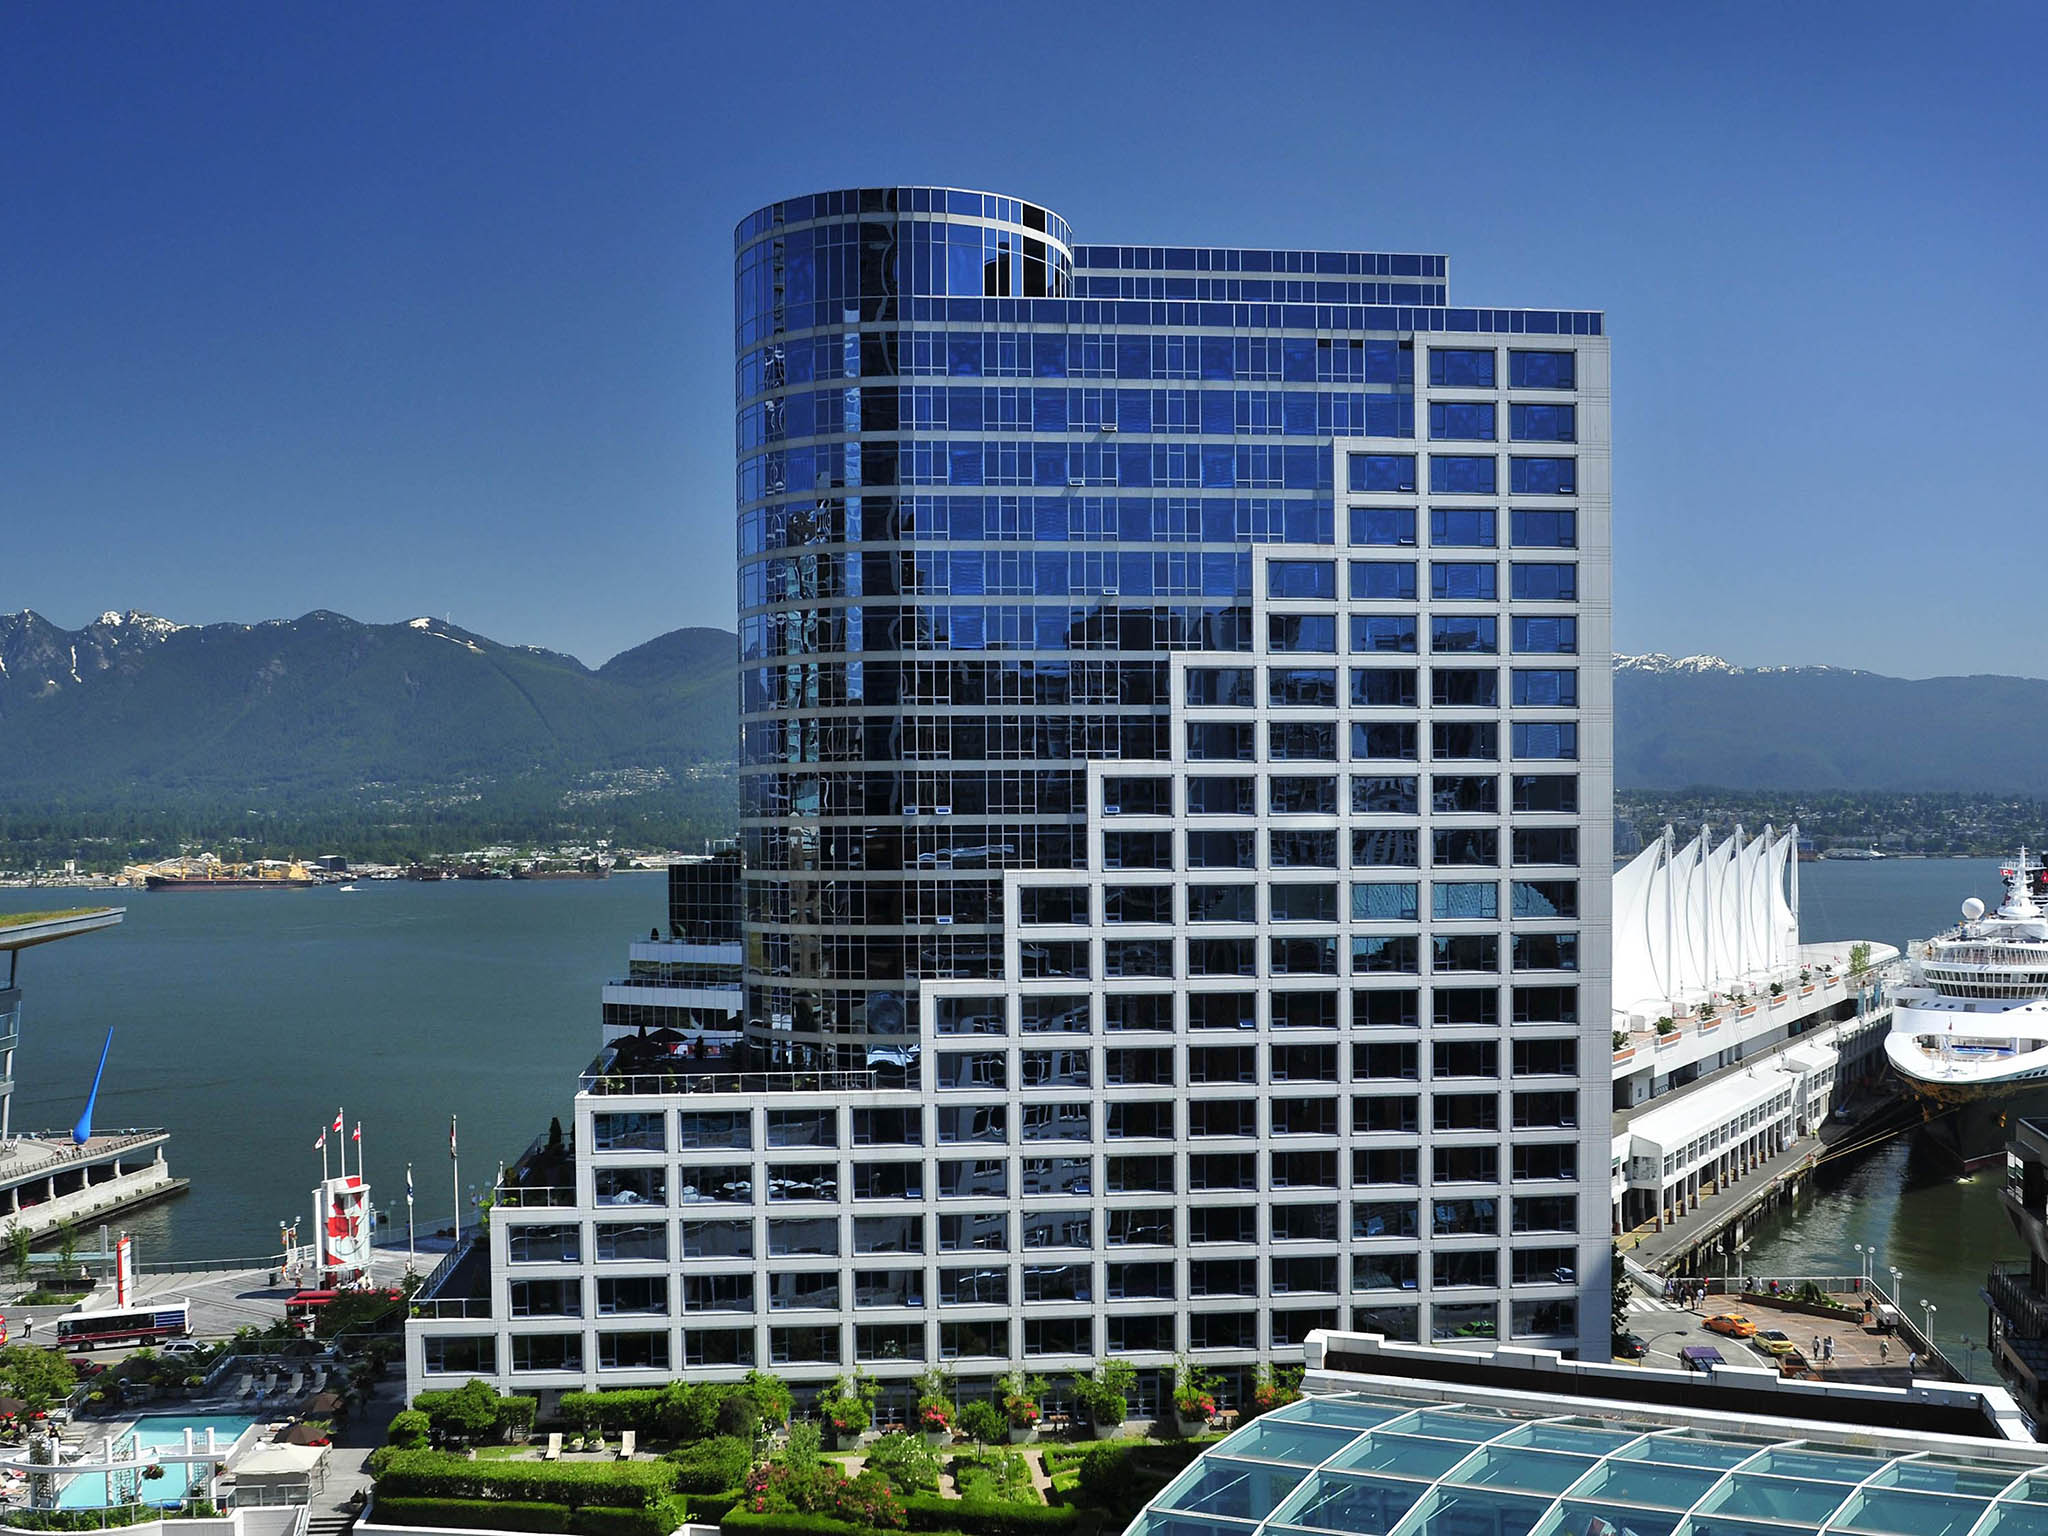 Hotel – Fairmont Waterfront